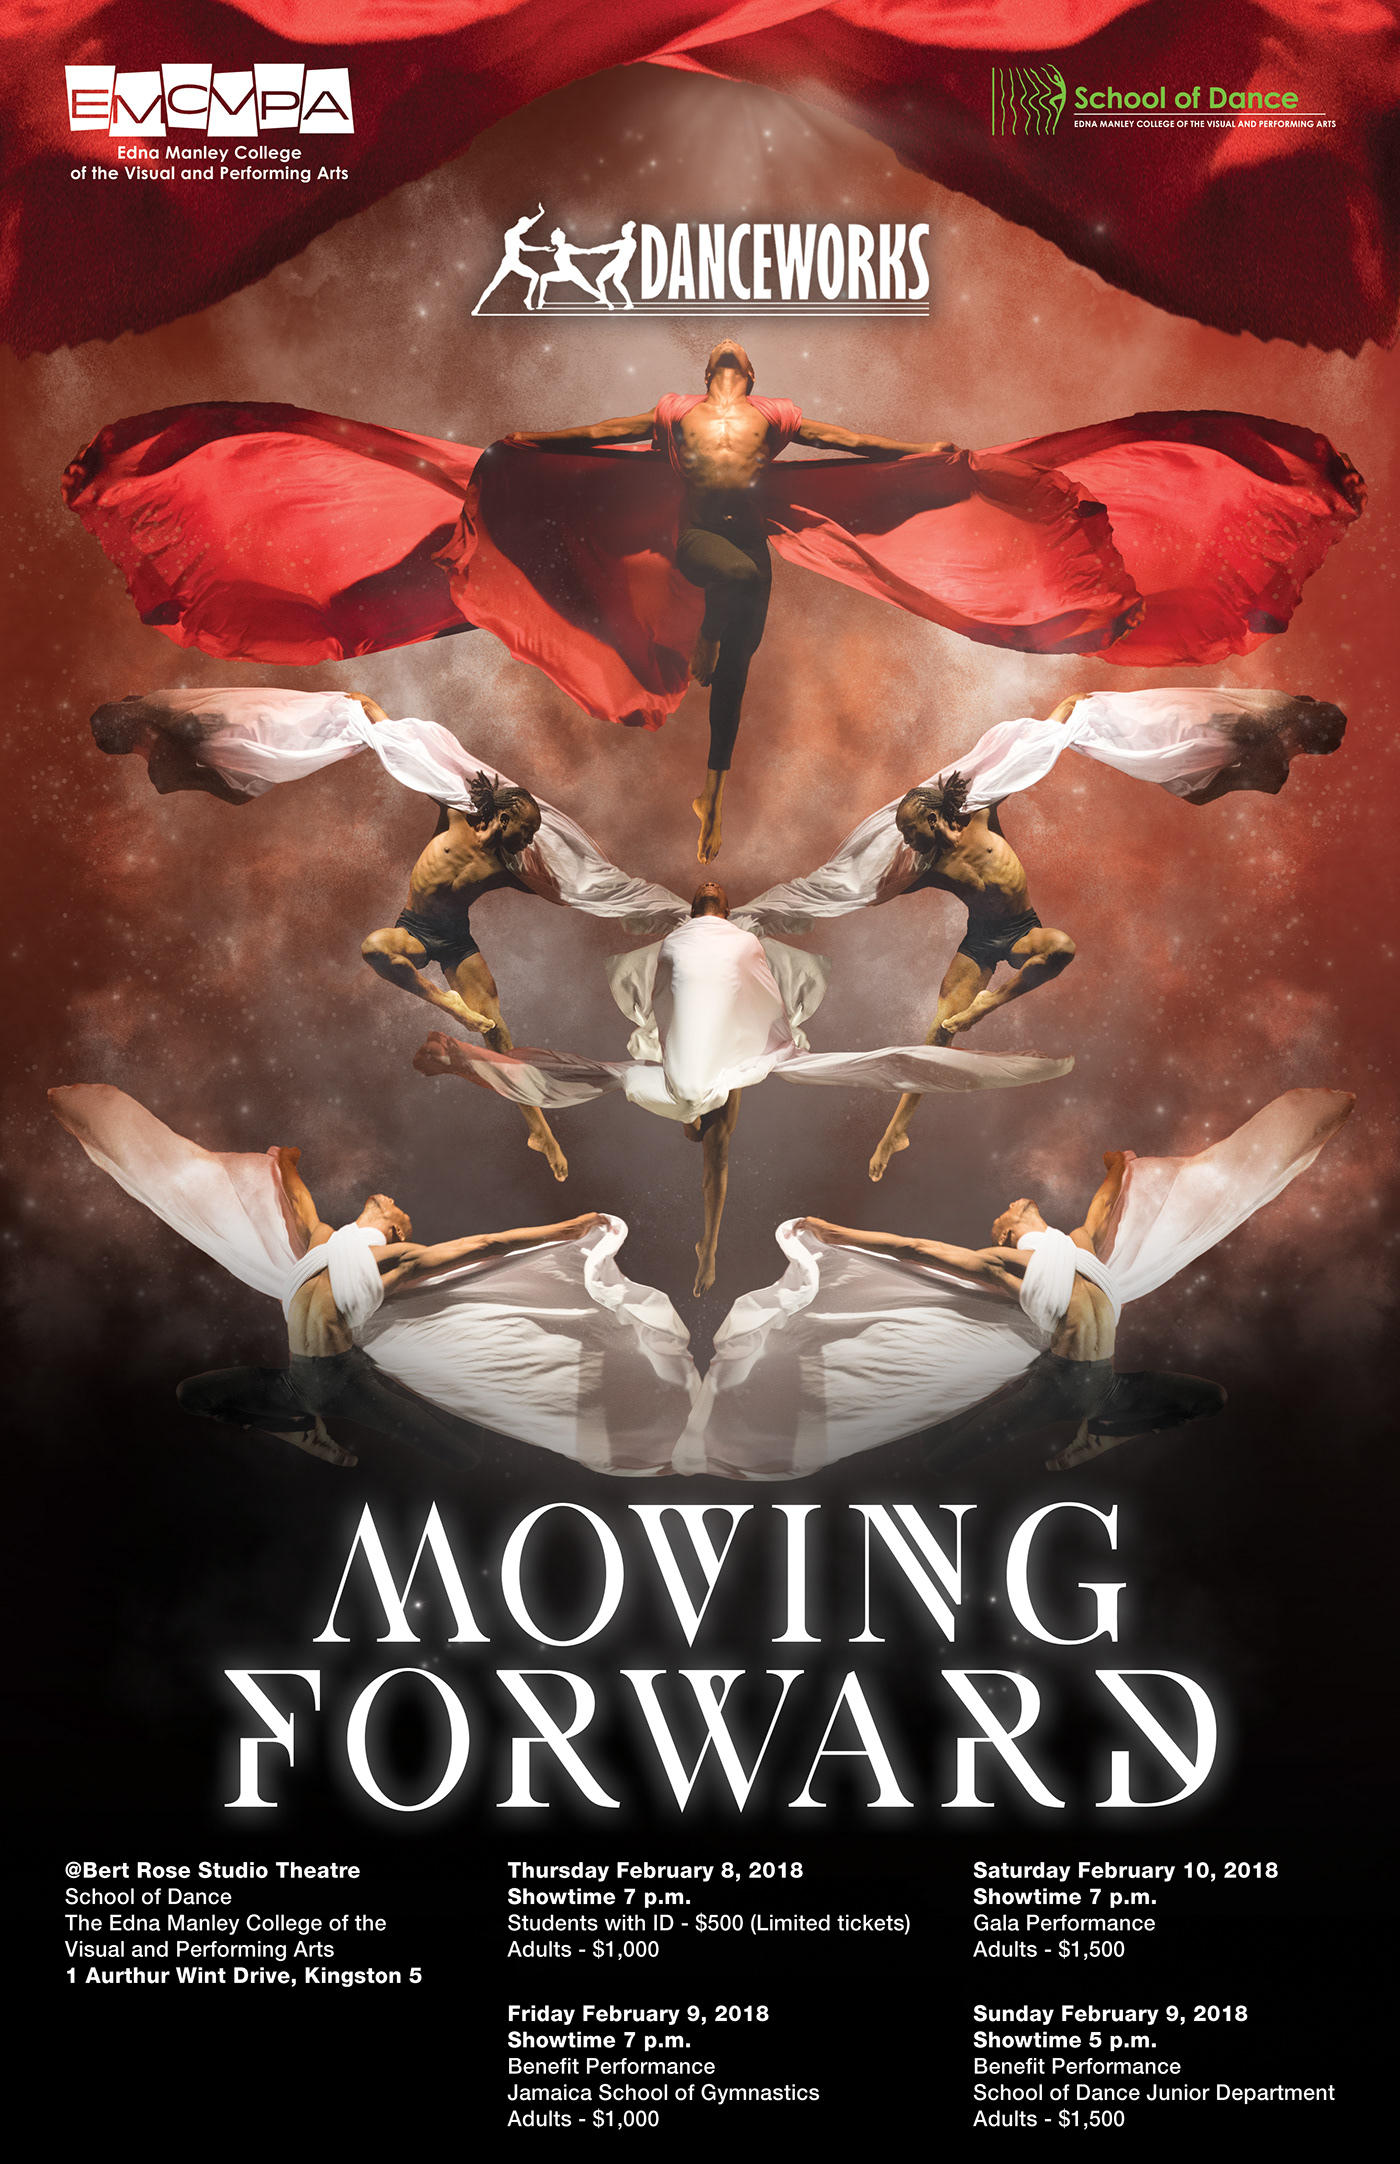 Moving Forward promotional artwork designed by Kenneil Smith